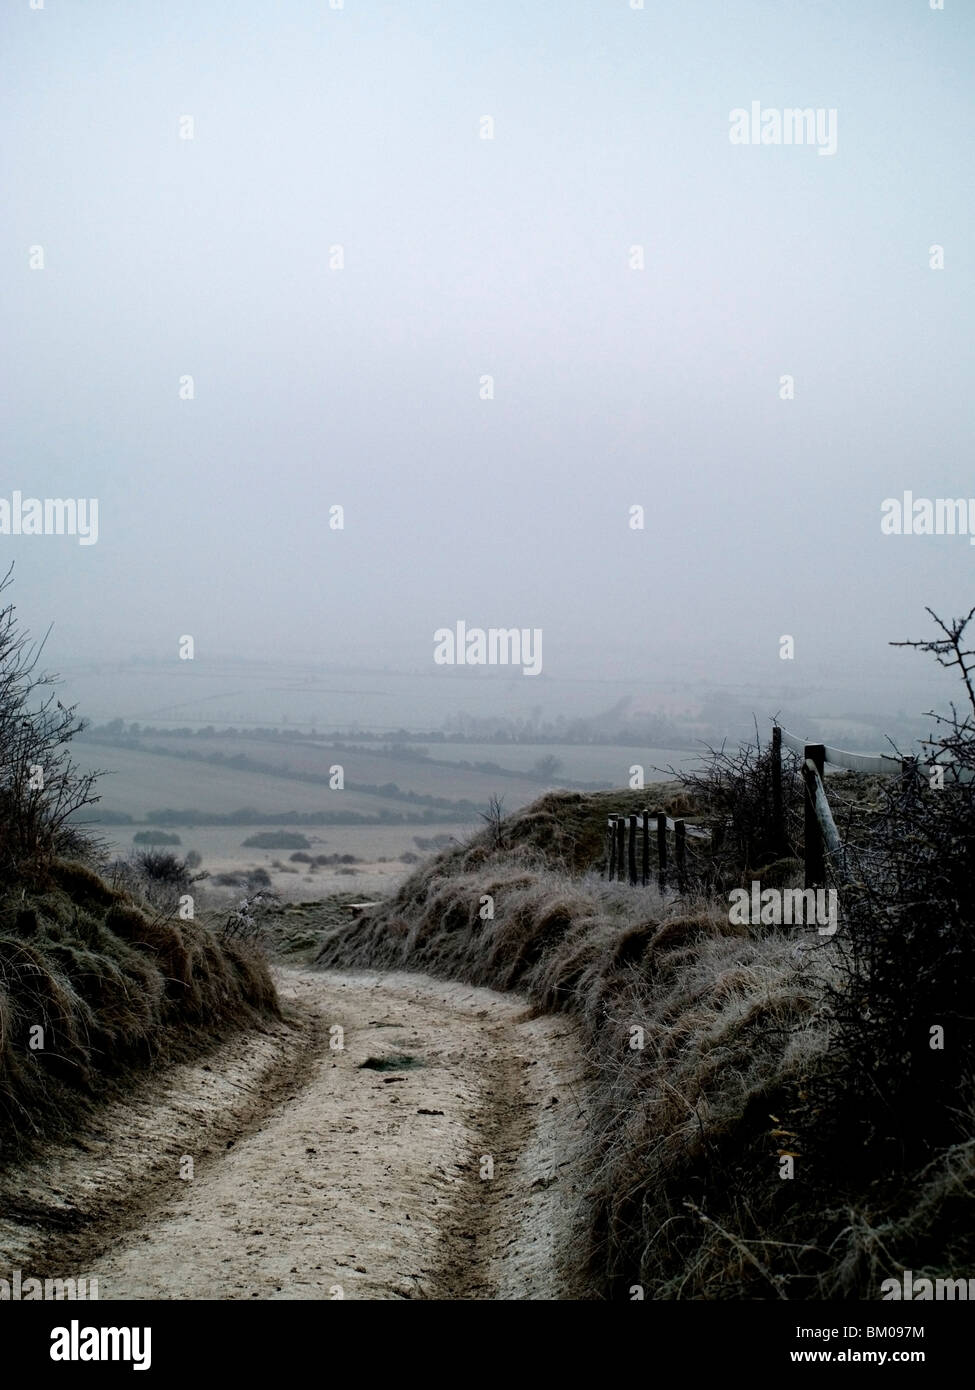 A country lane in winter on the Downs, Sussex, England - Stock Image